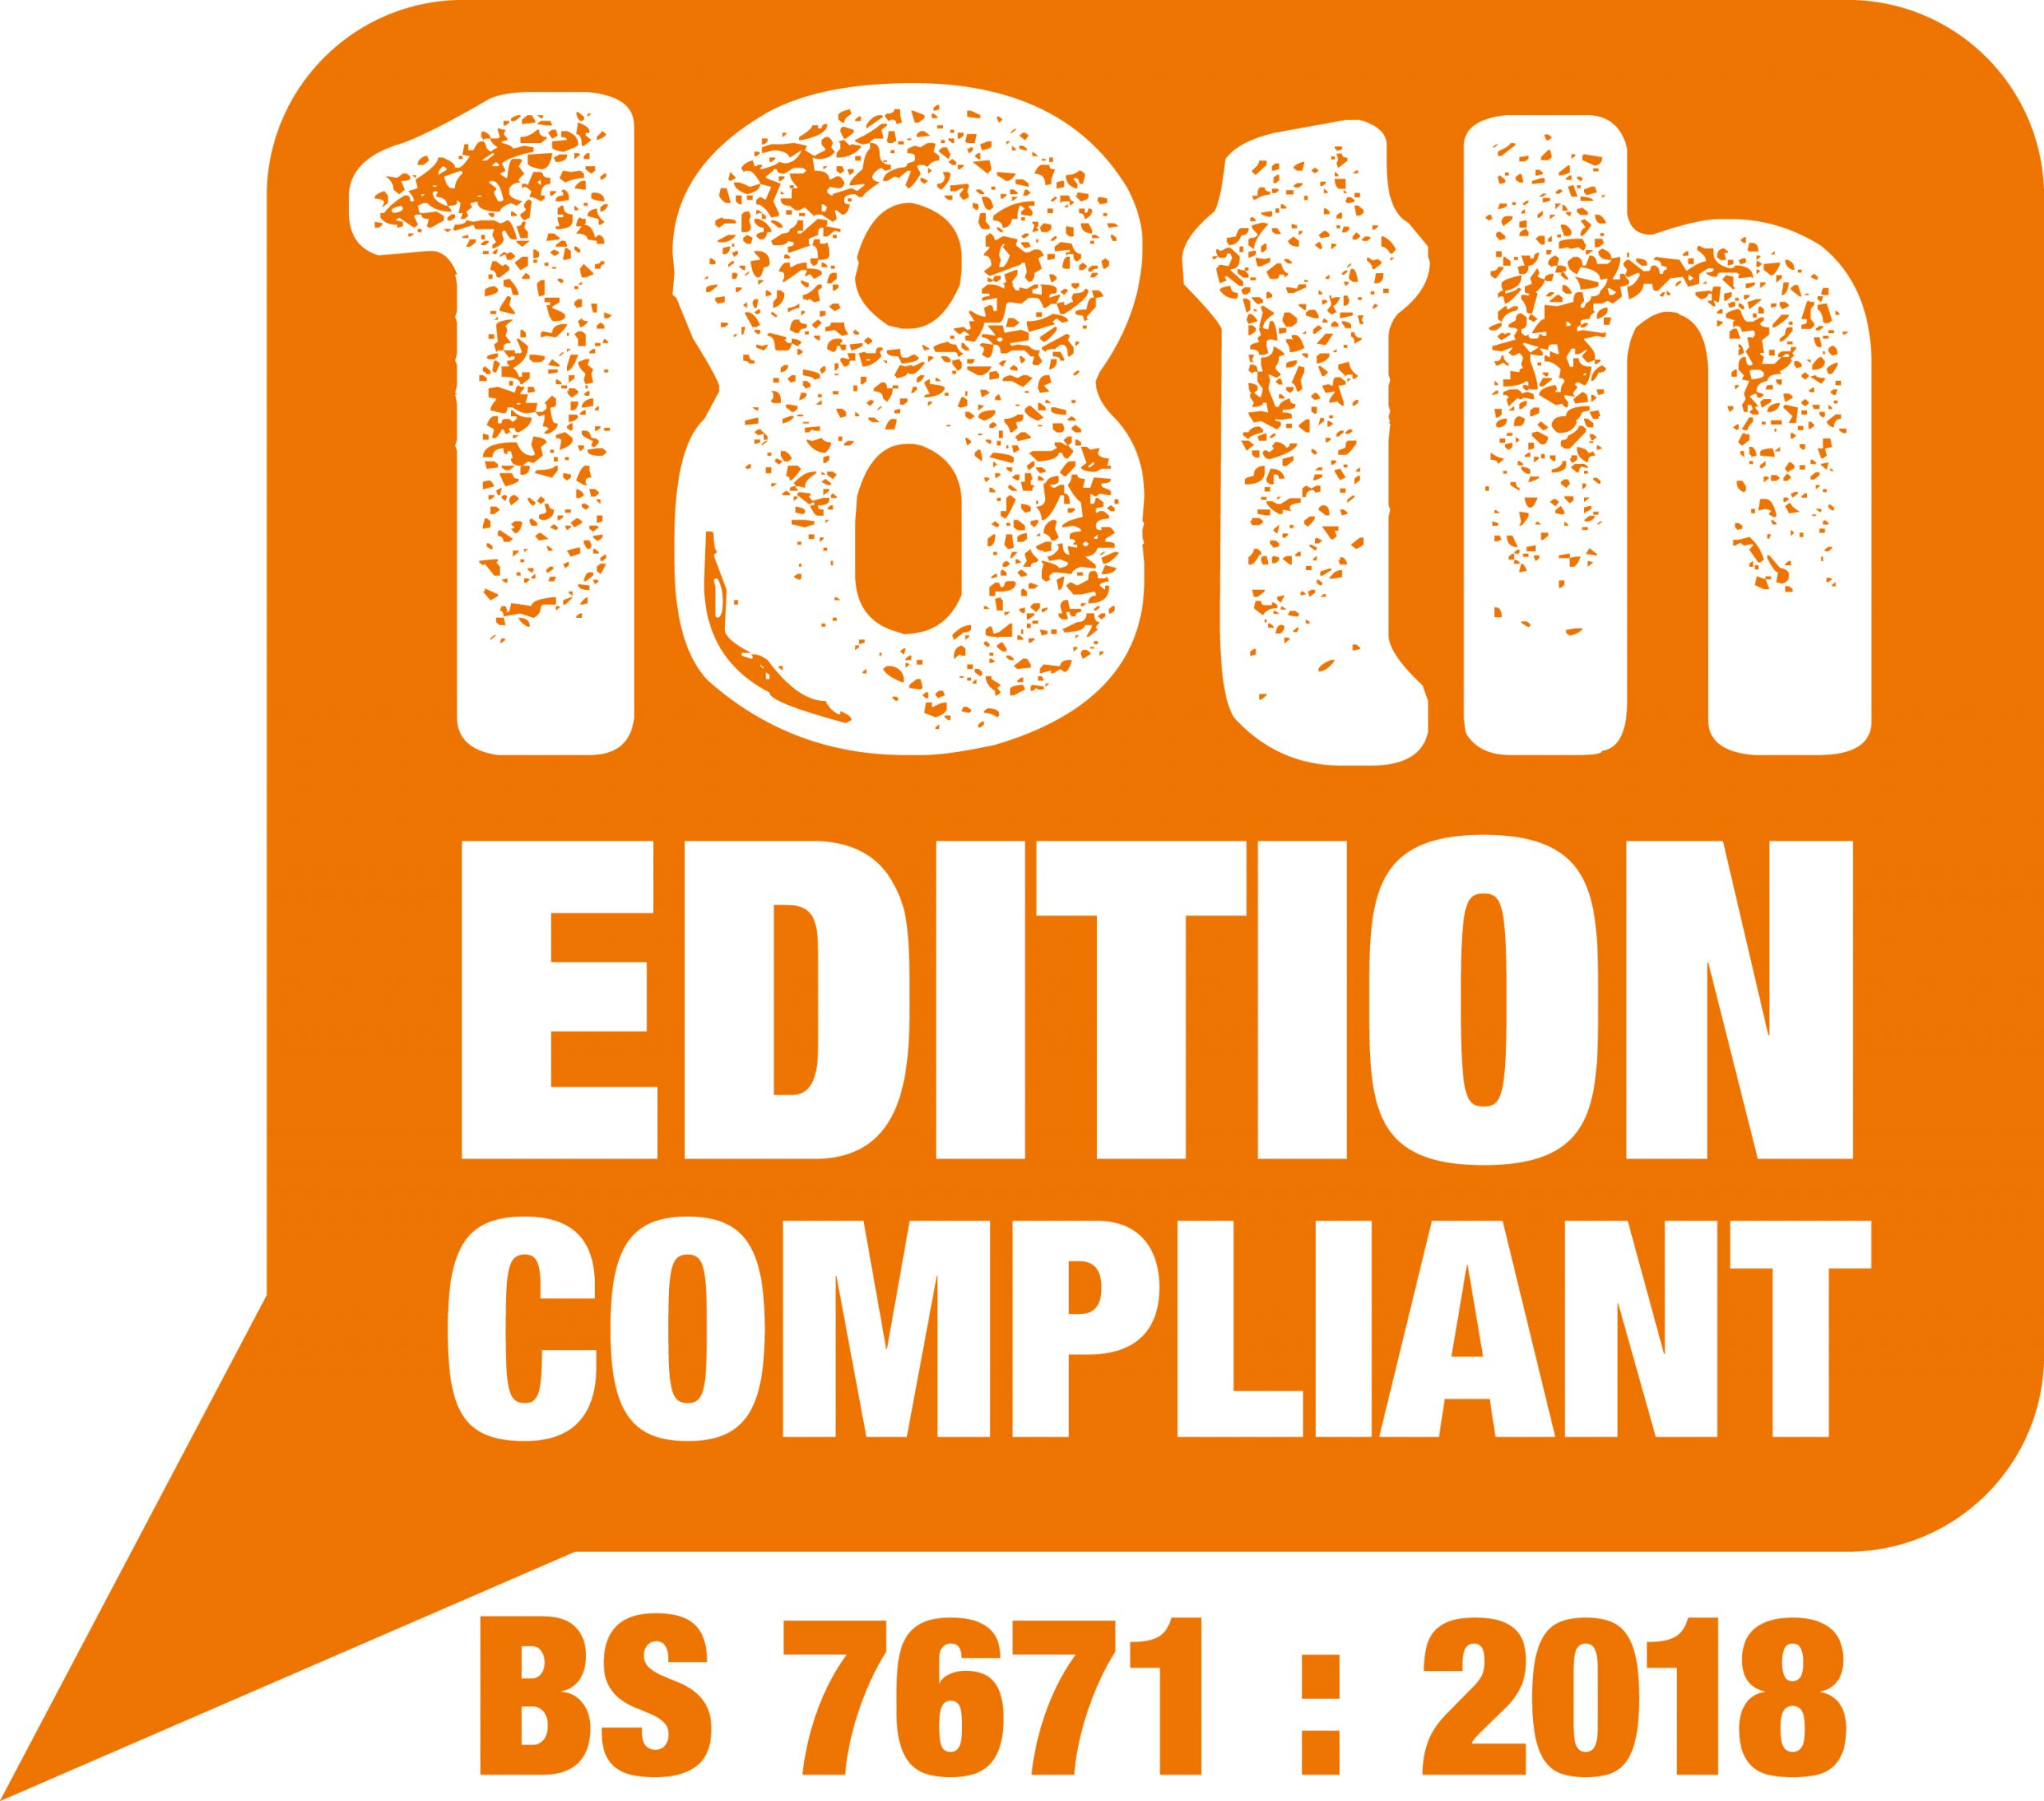 Electric Underfloor Heating BS:7671:2018 18th Edition Compliant